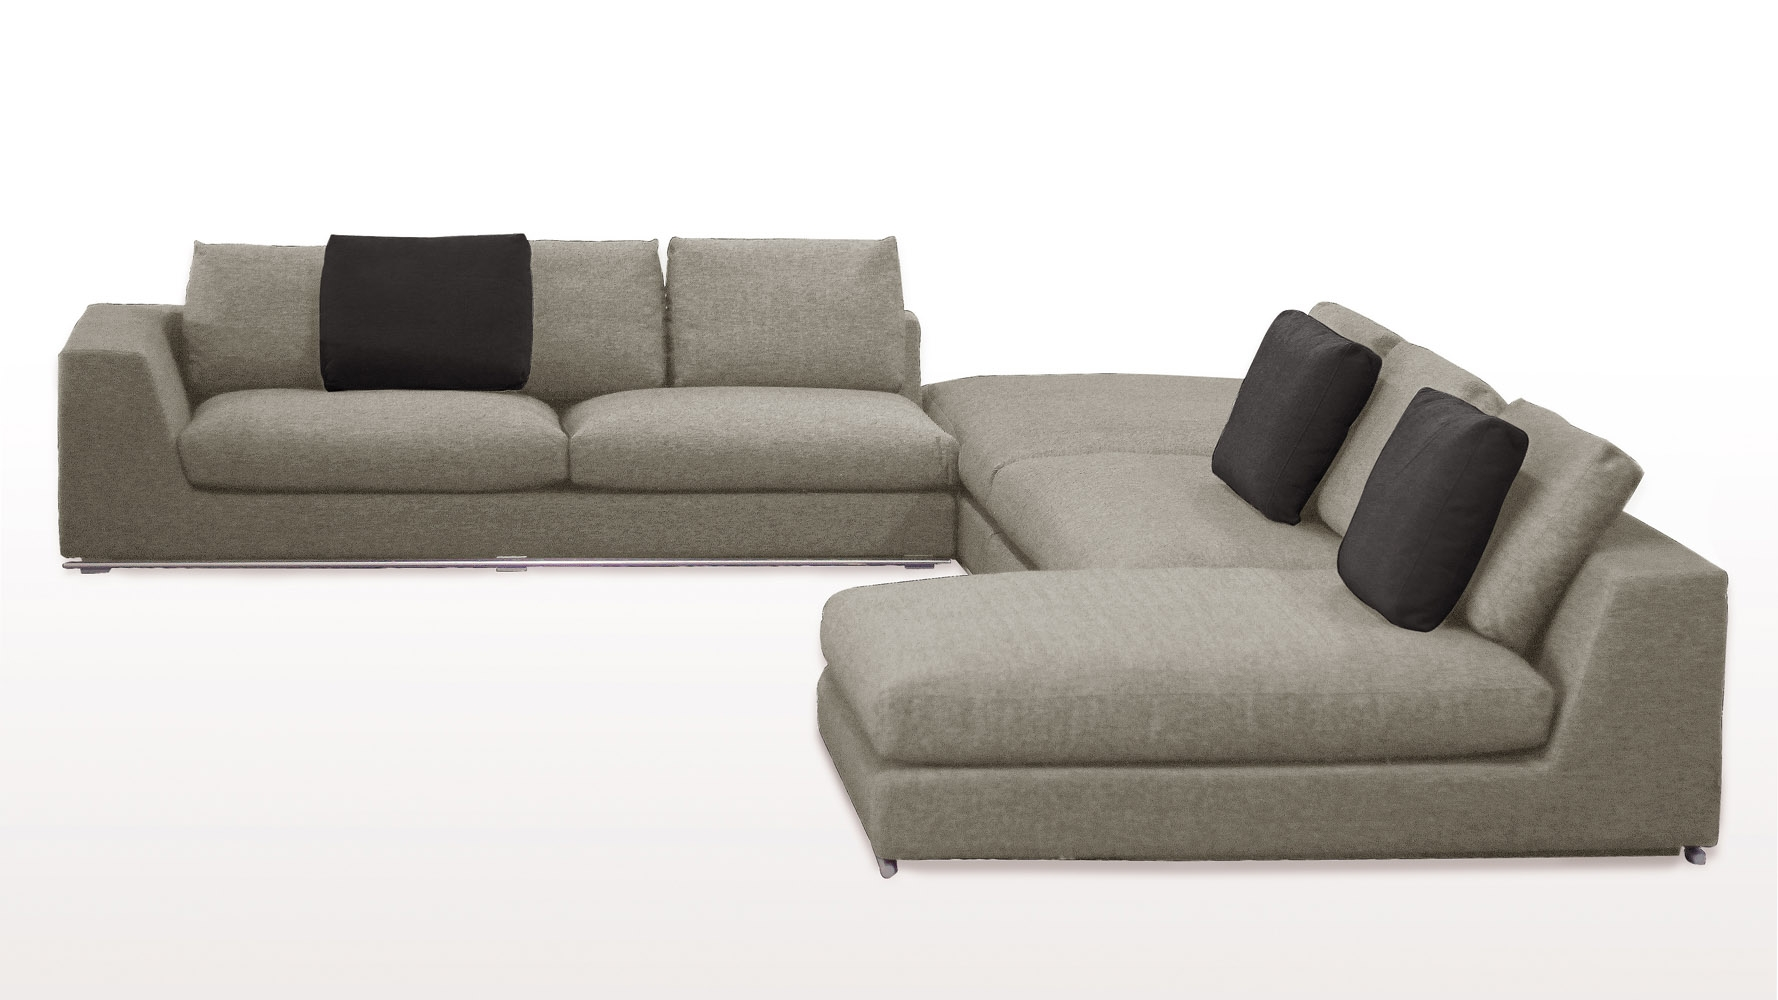 Comodo Sectional Sofa With Ottoman Grey Zuri Furniture Pertaining To Armless Sectional Sofas (#9 of 12)